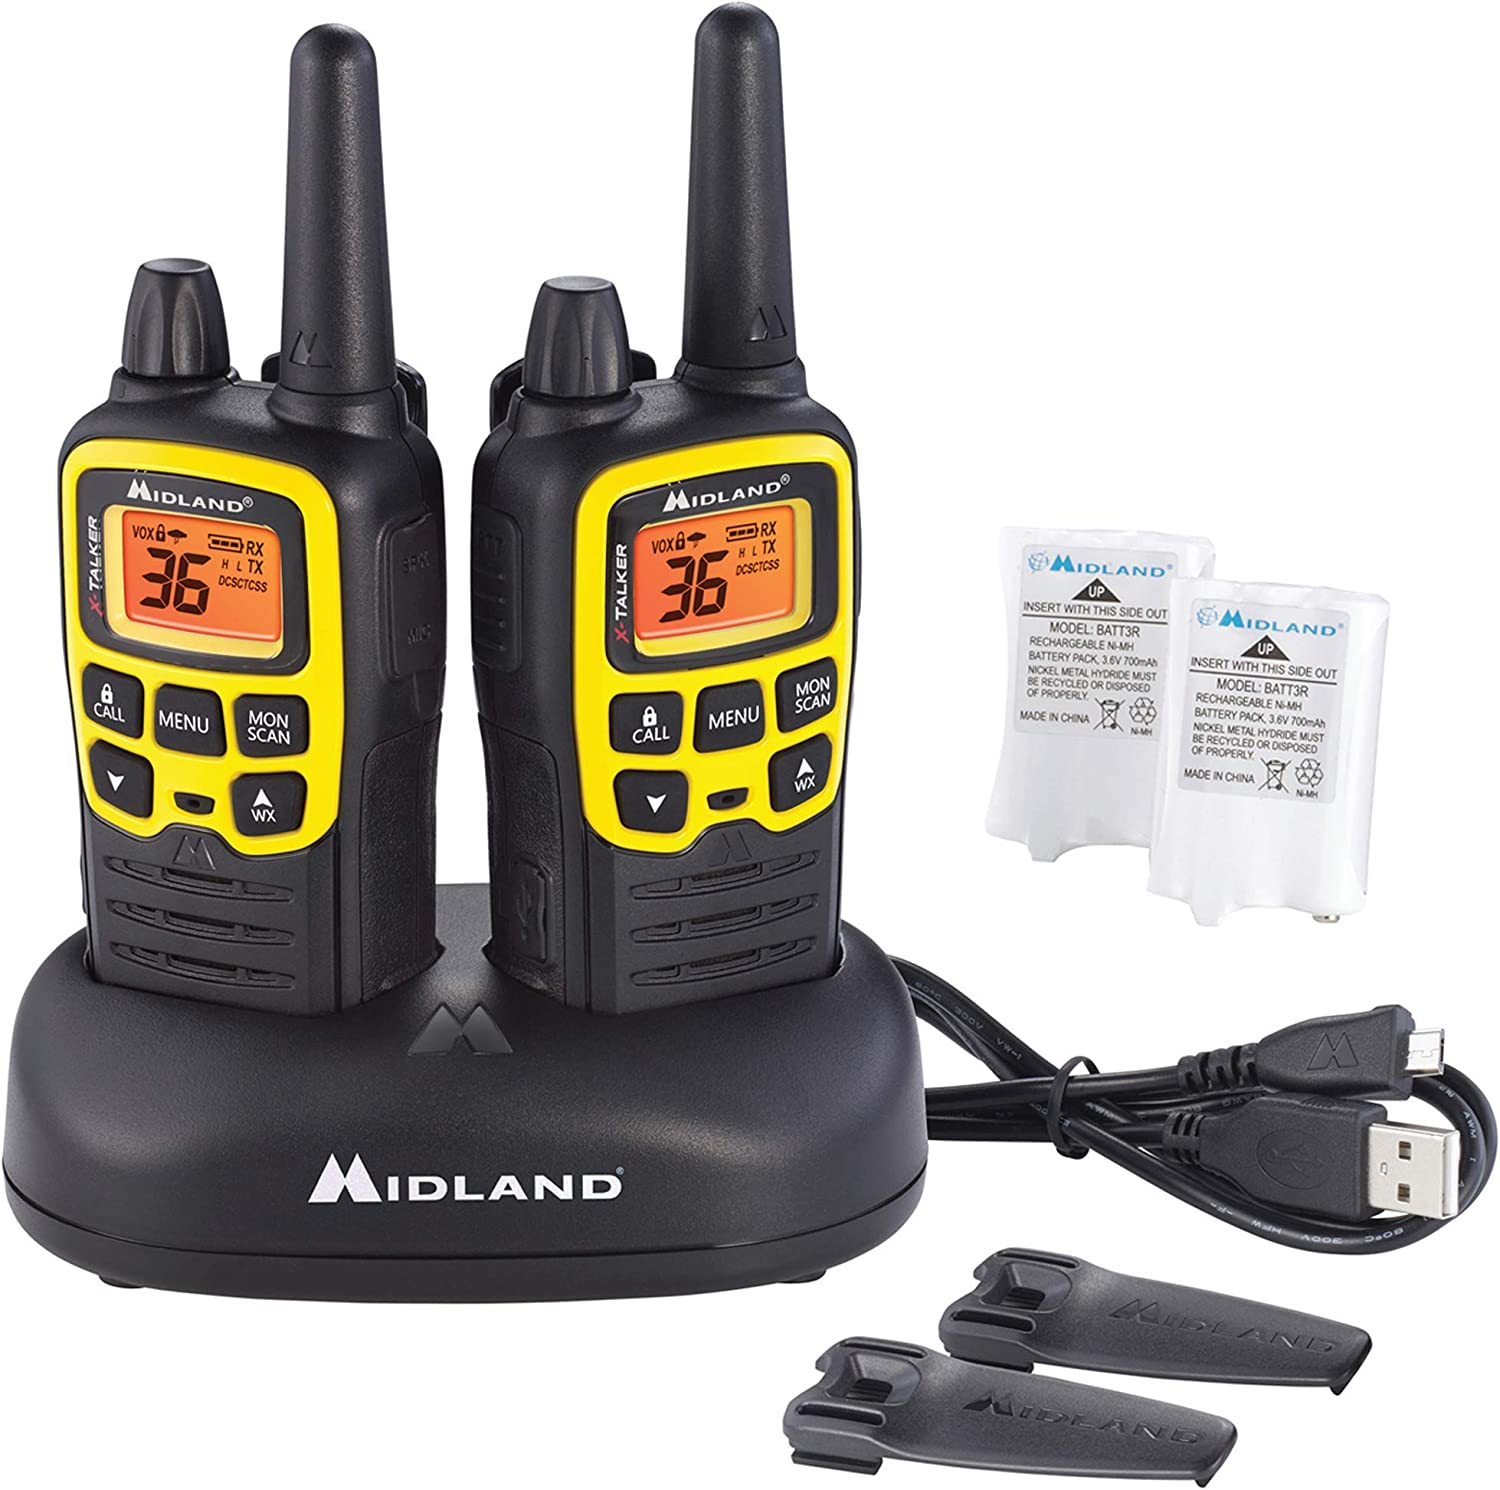 Midland - X-TALKER T61VP3, 36 Channel FRS Two-Way Radio - Up to 32 Mile Range Walkie Talkie, 121 Privacy Codes, & NOAA Weather Scan + Alert (Pair Pack) (Black/Yellow)